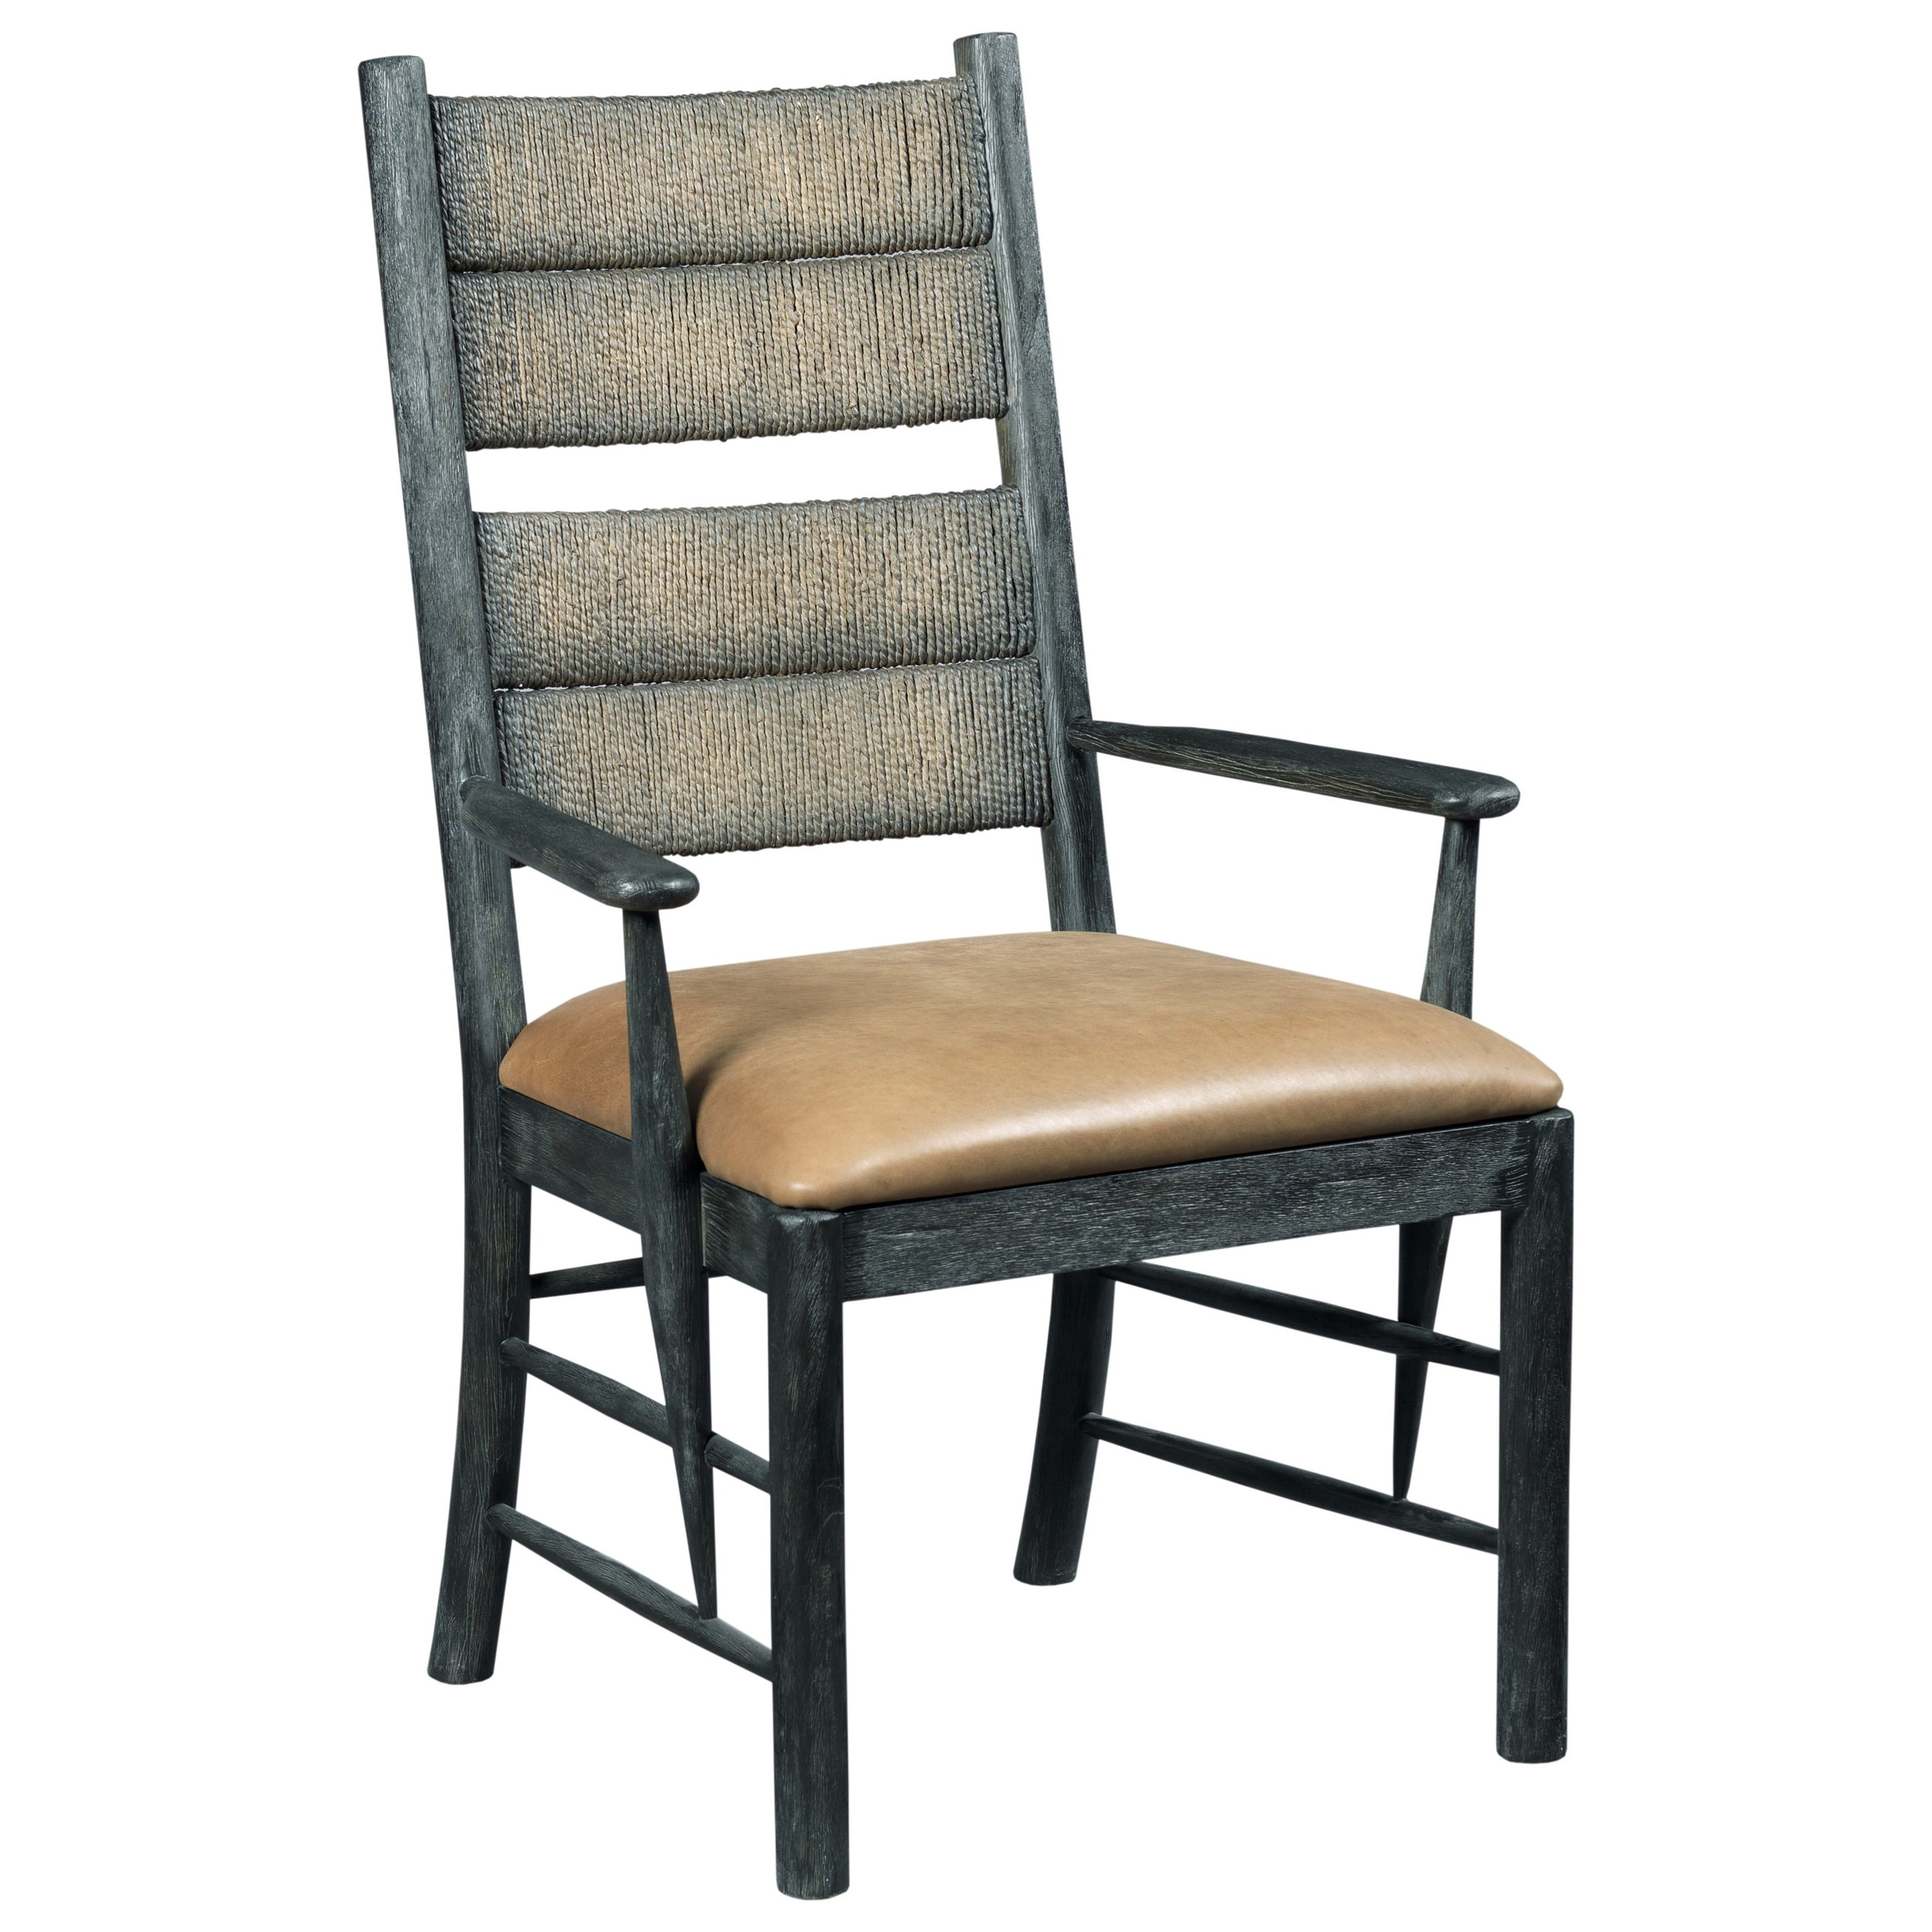 Trails Cypress Arm Chair by Kincaid Furniture at Johnny Janosik